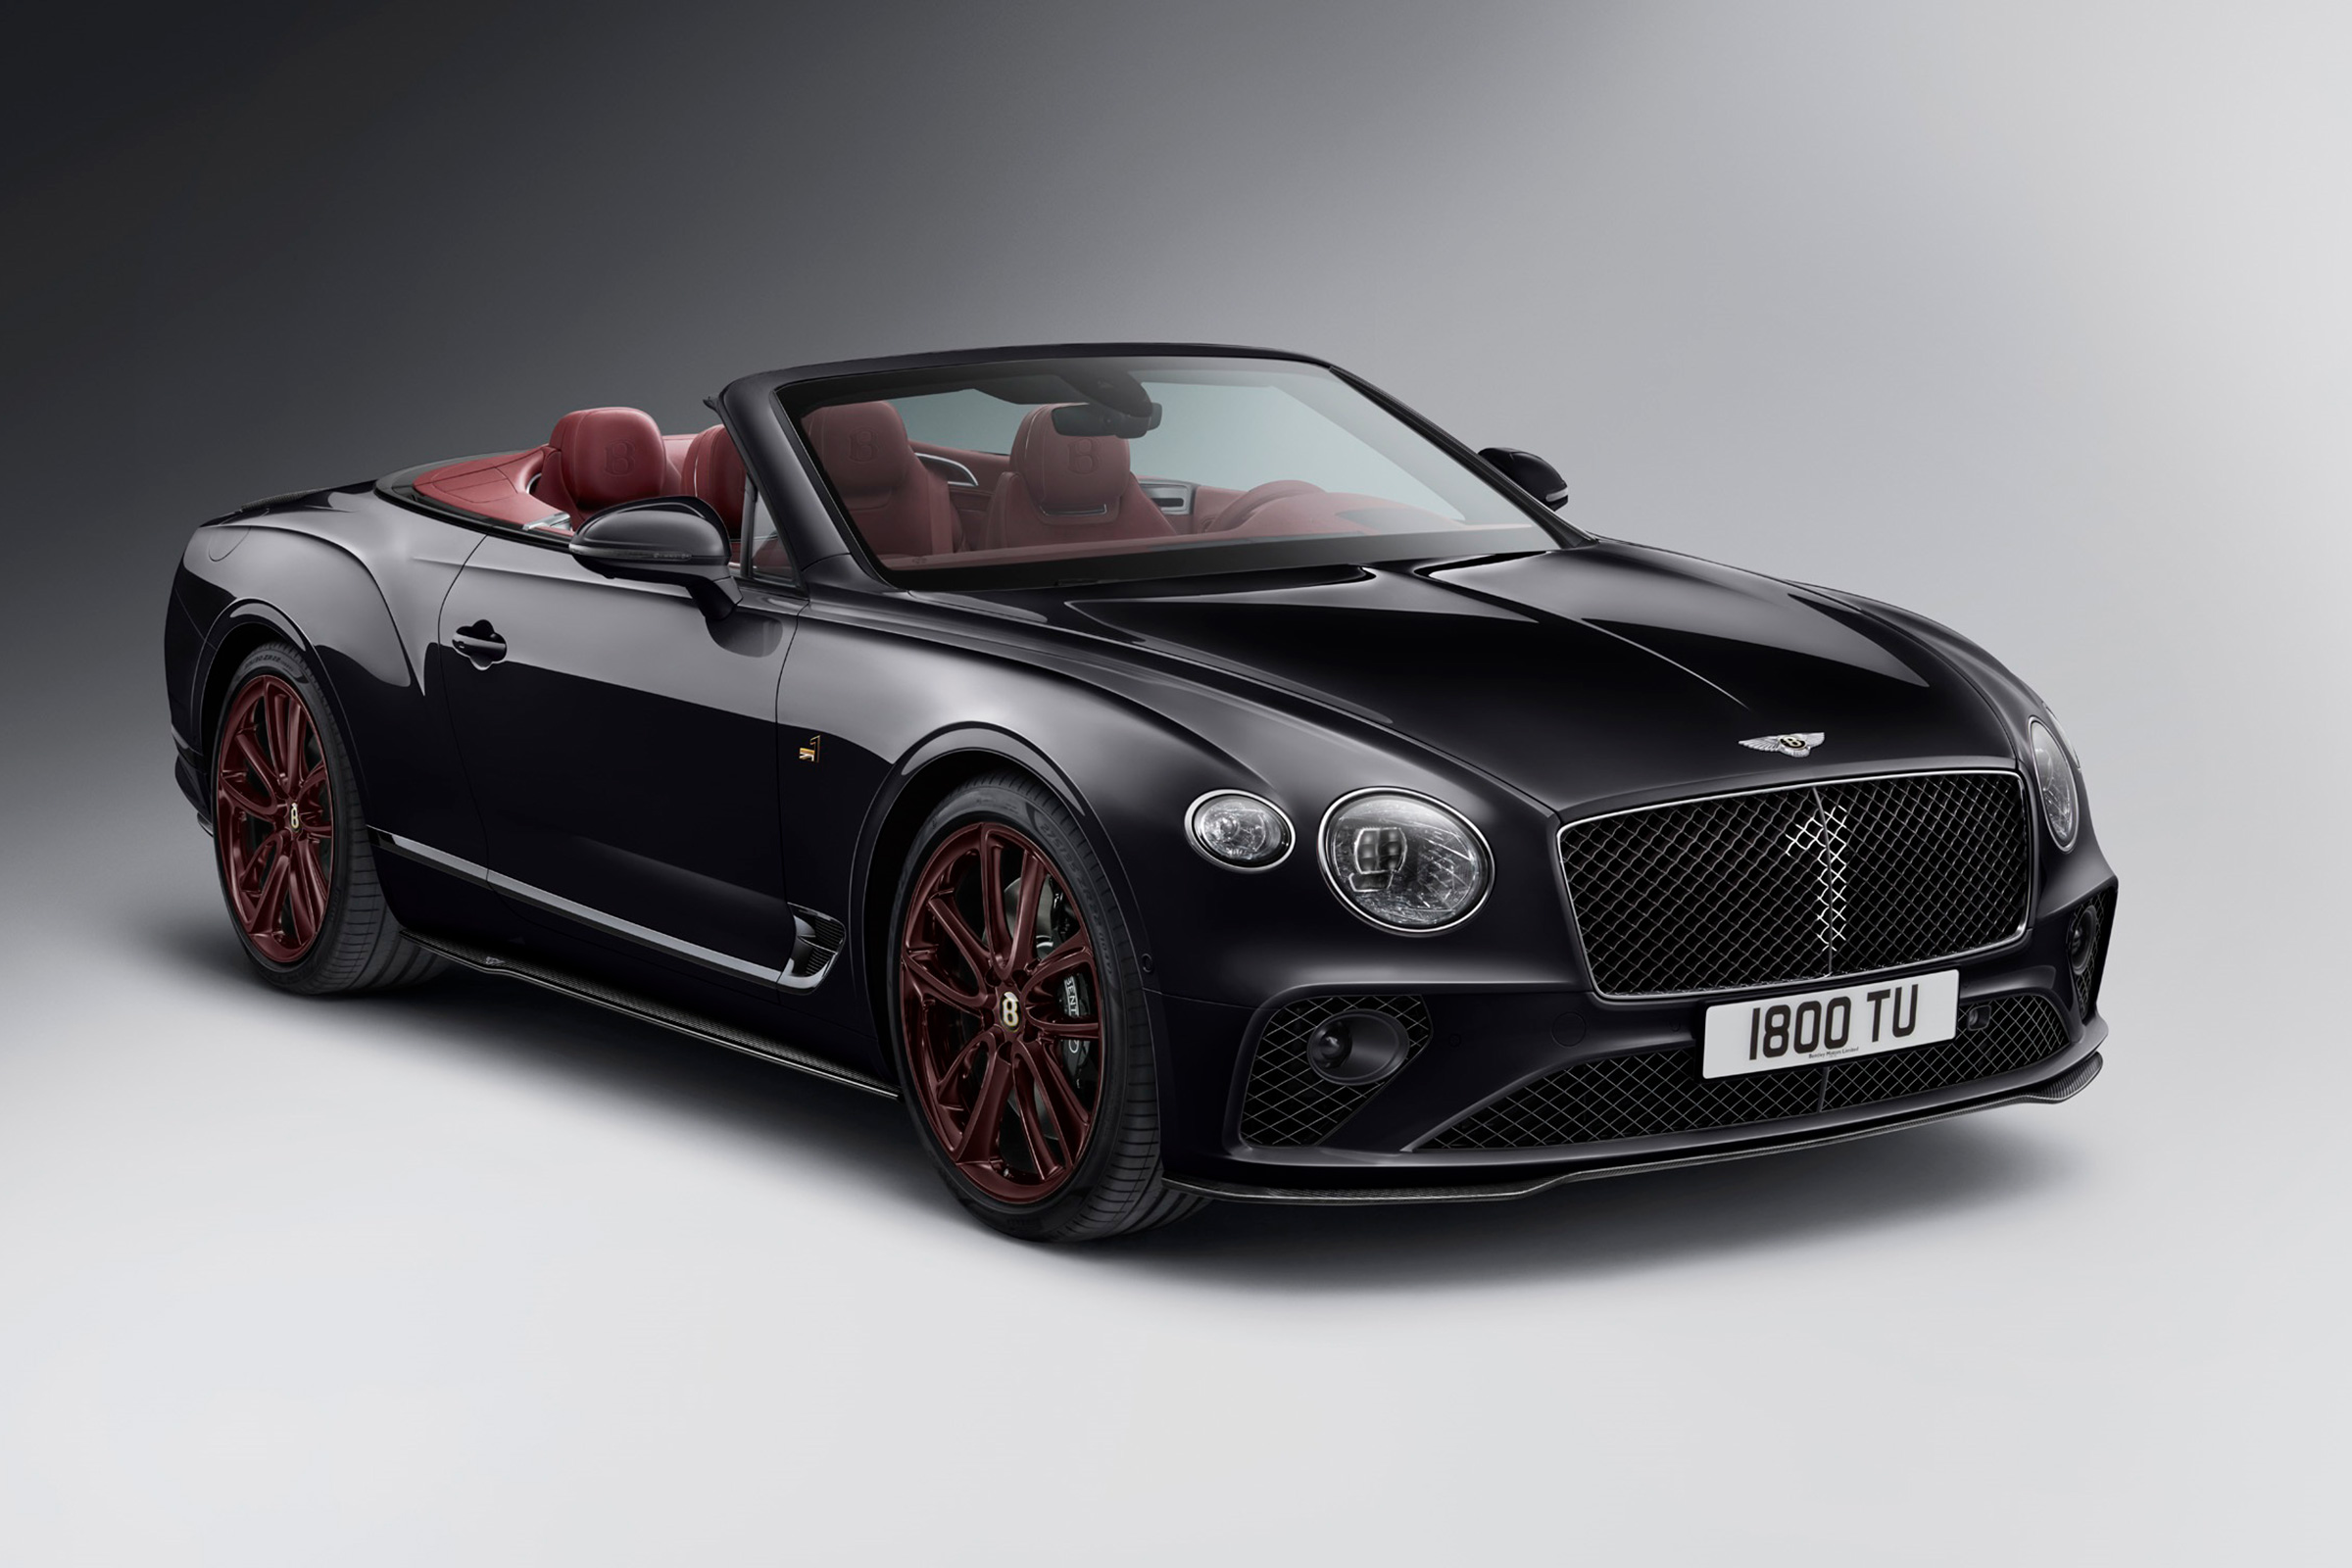 Bentley Continental Gt Convertible Number 1 Edition Revealed Evo